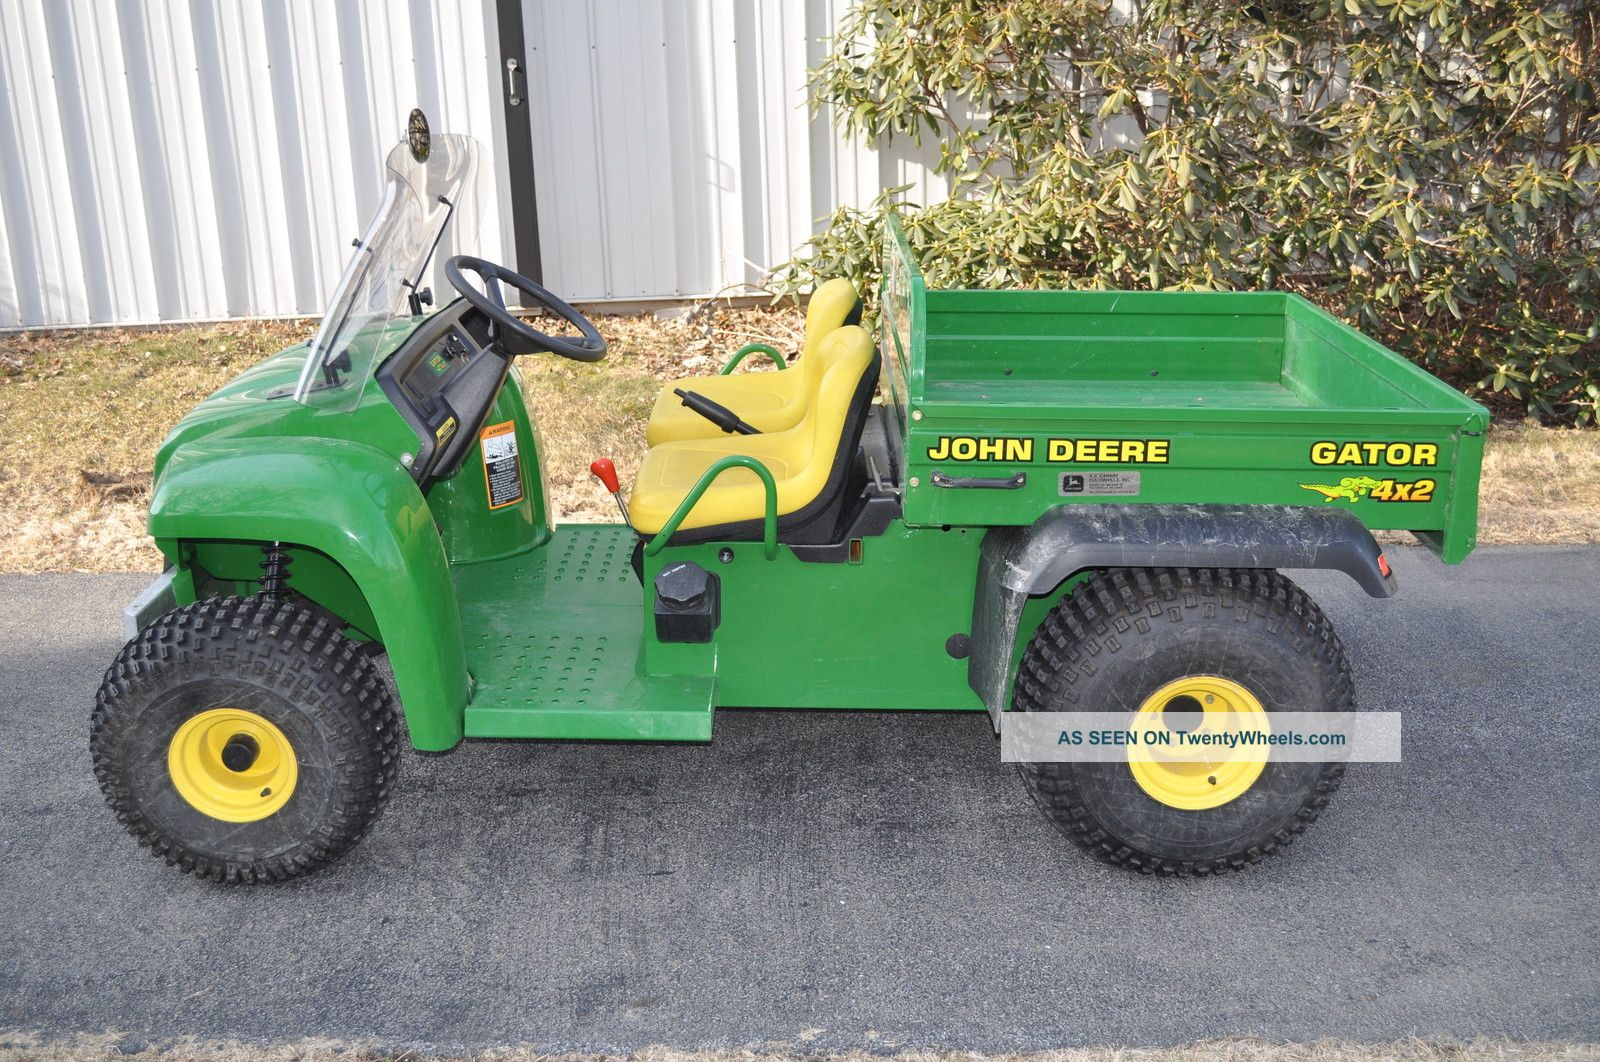 john deere gator picture - photo #34